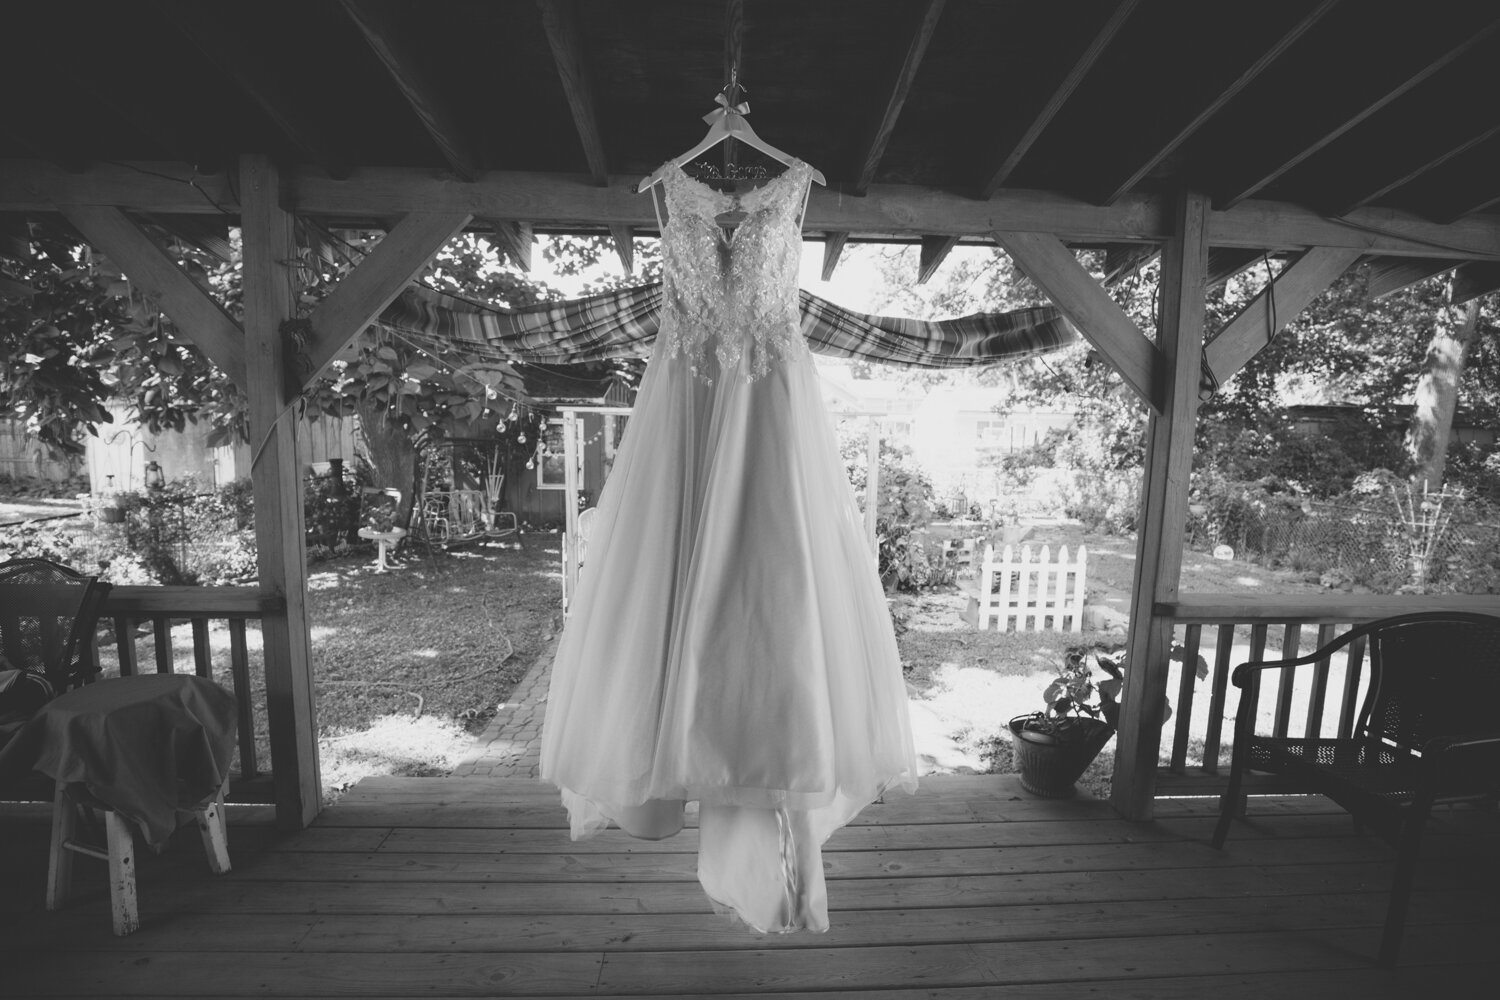 Black and white image of a wedding dress on a porch